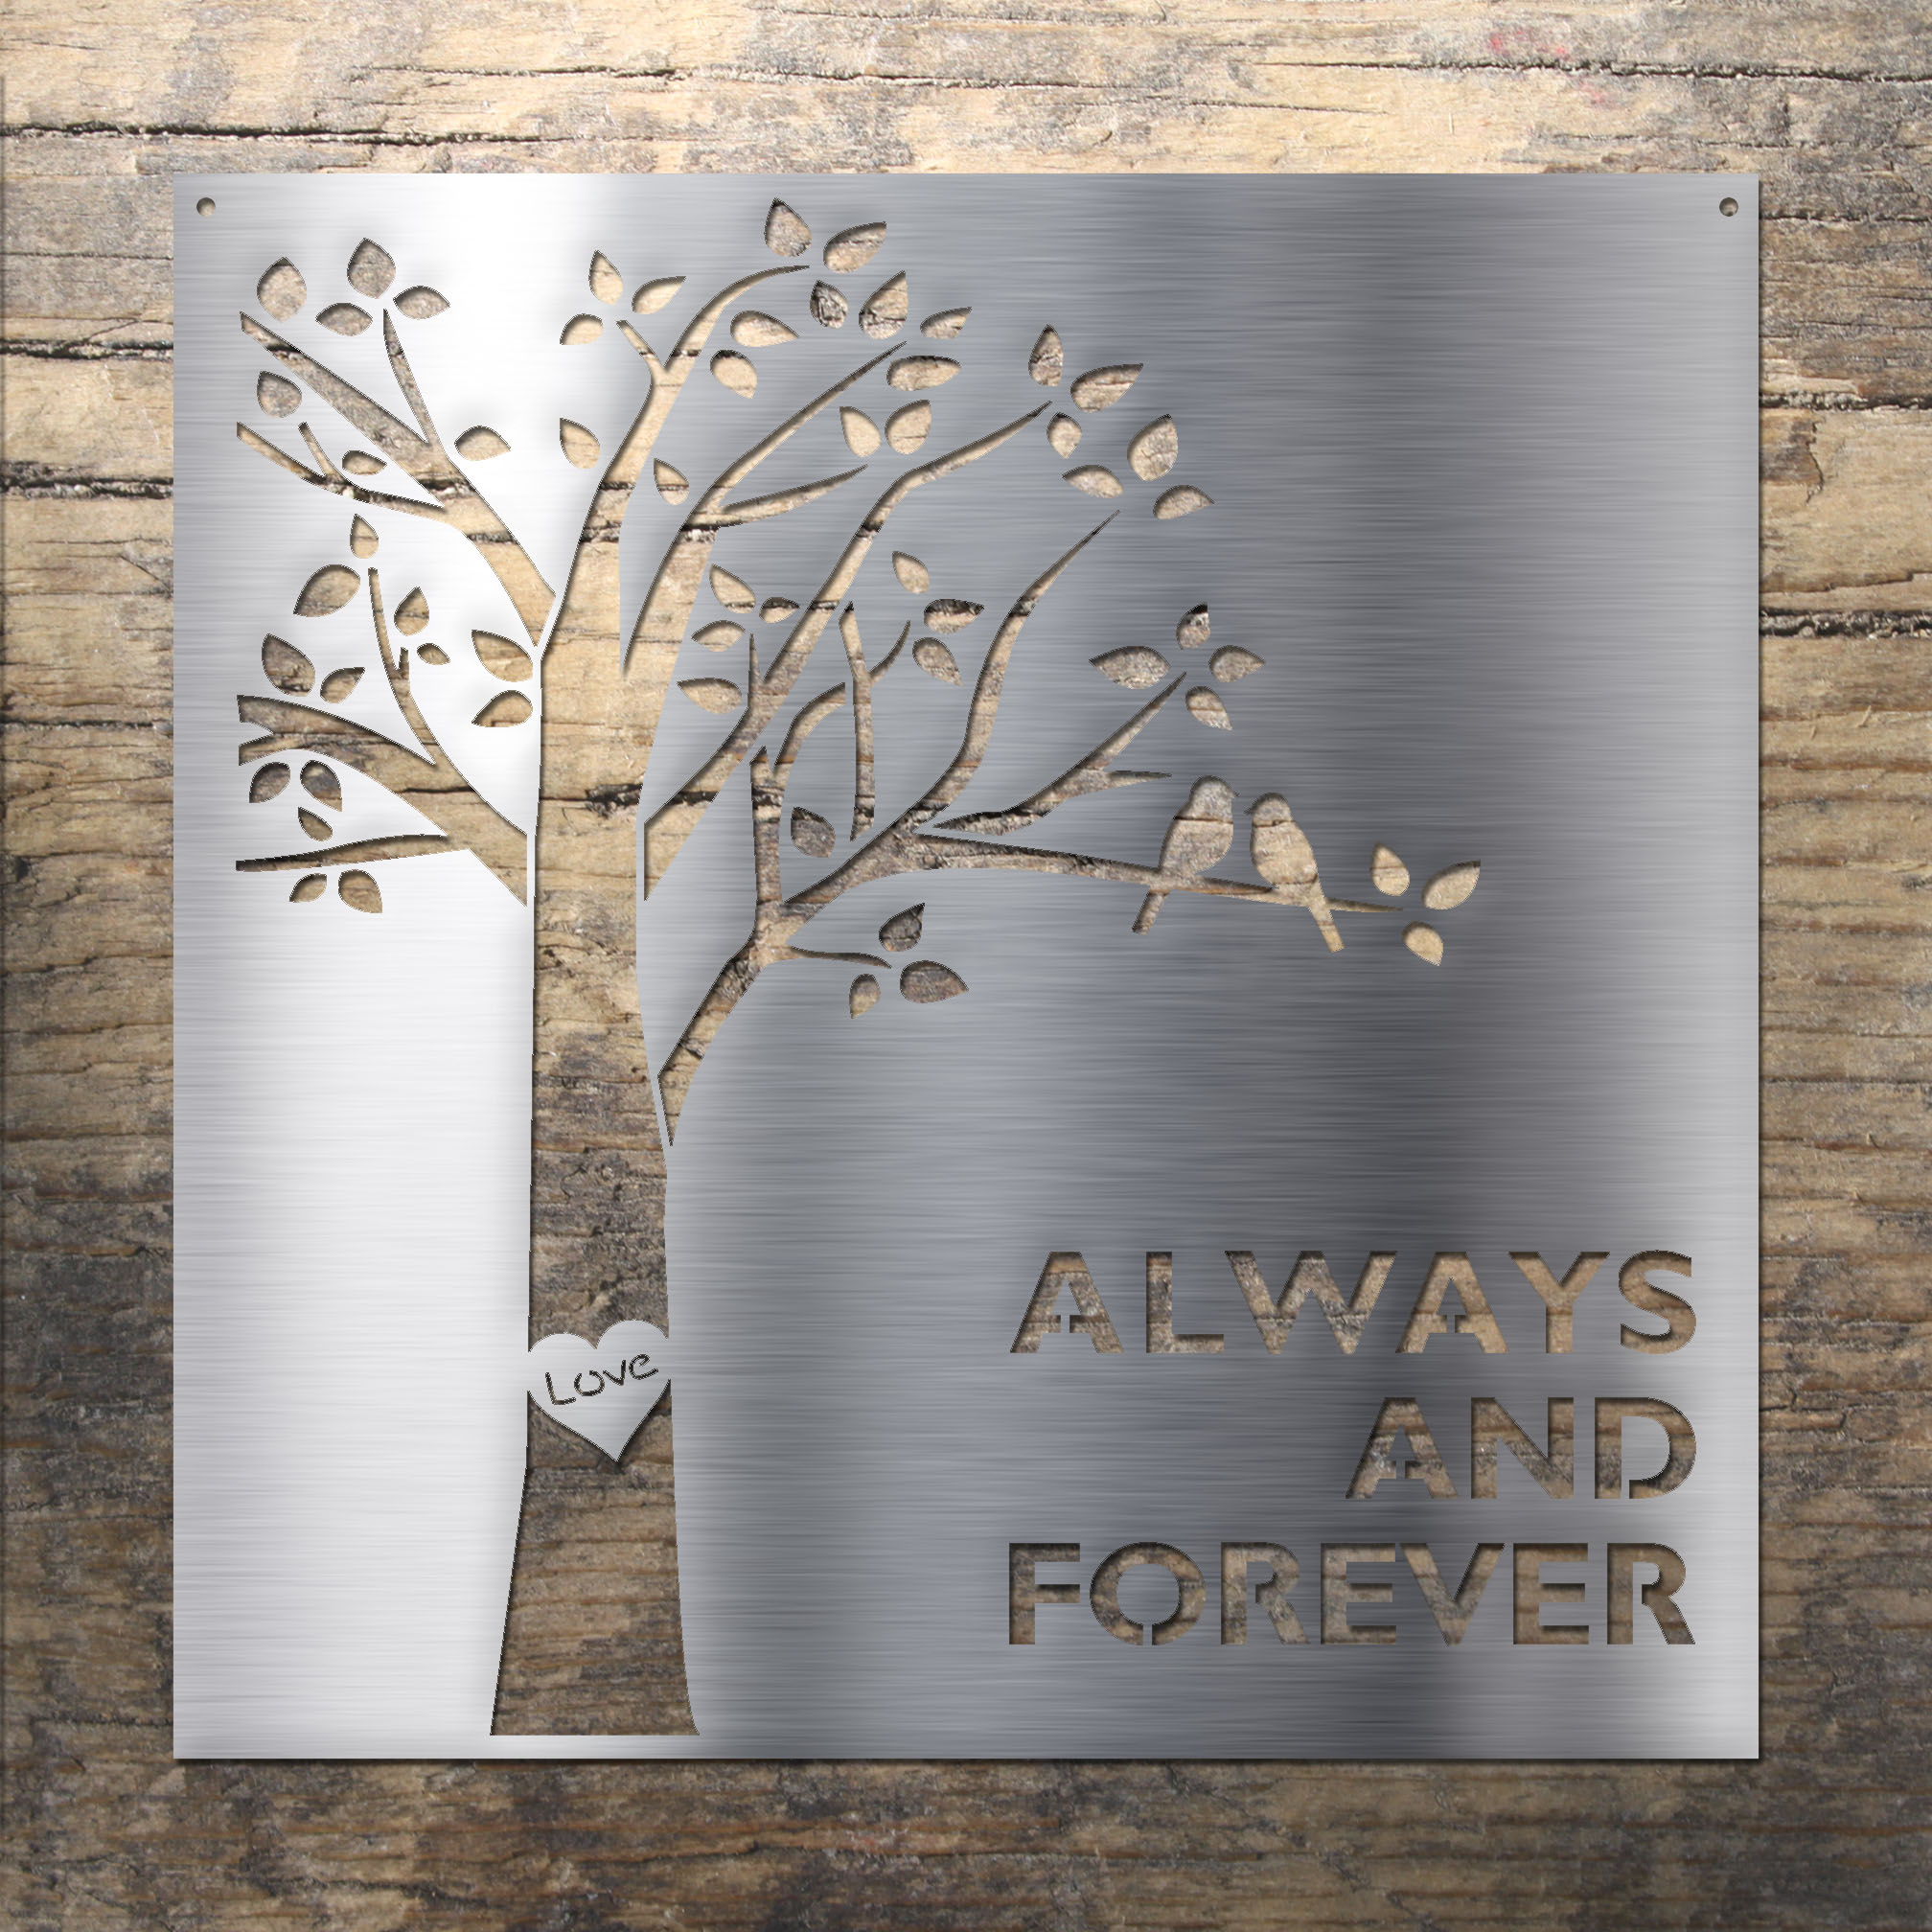 laser cut stainless steel